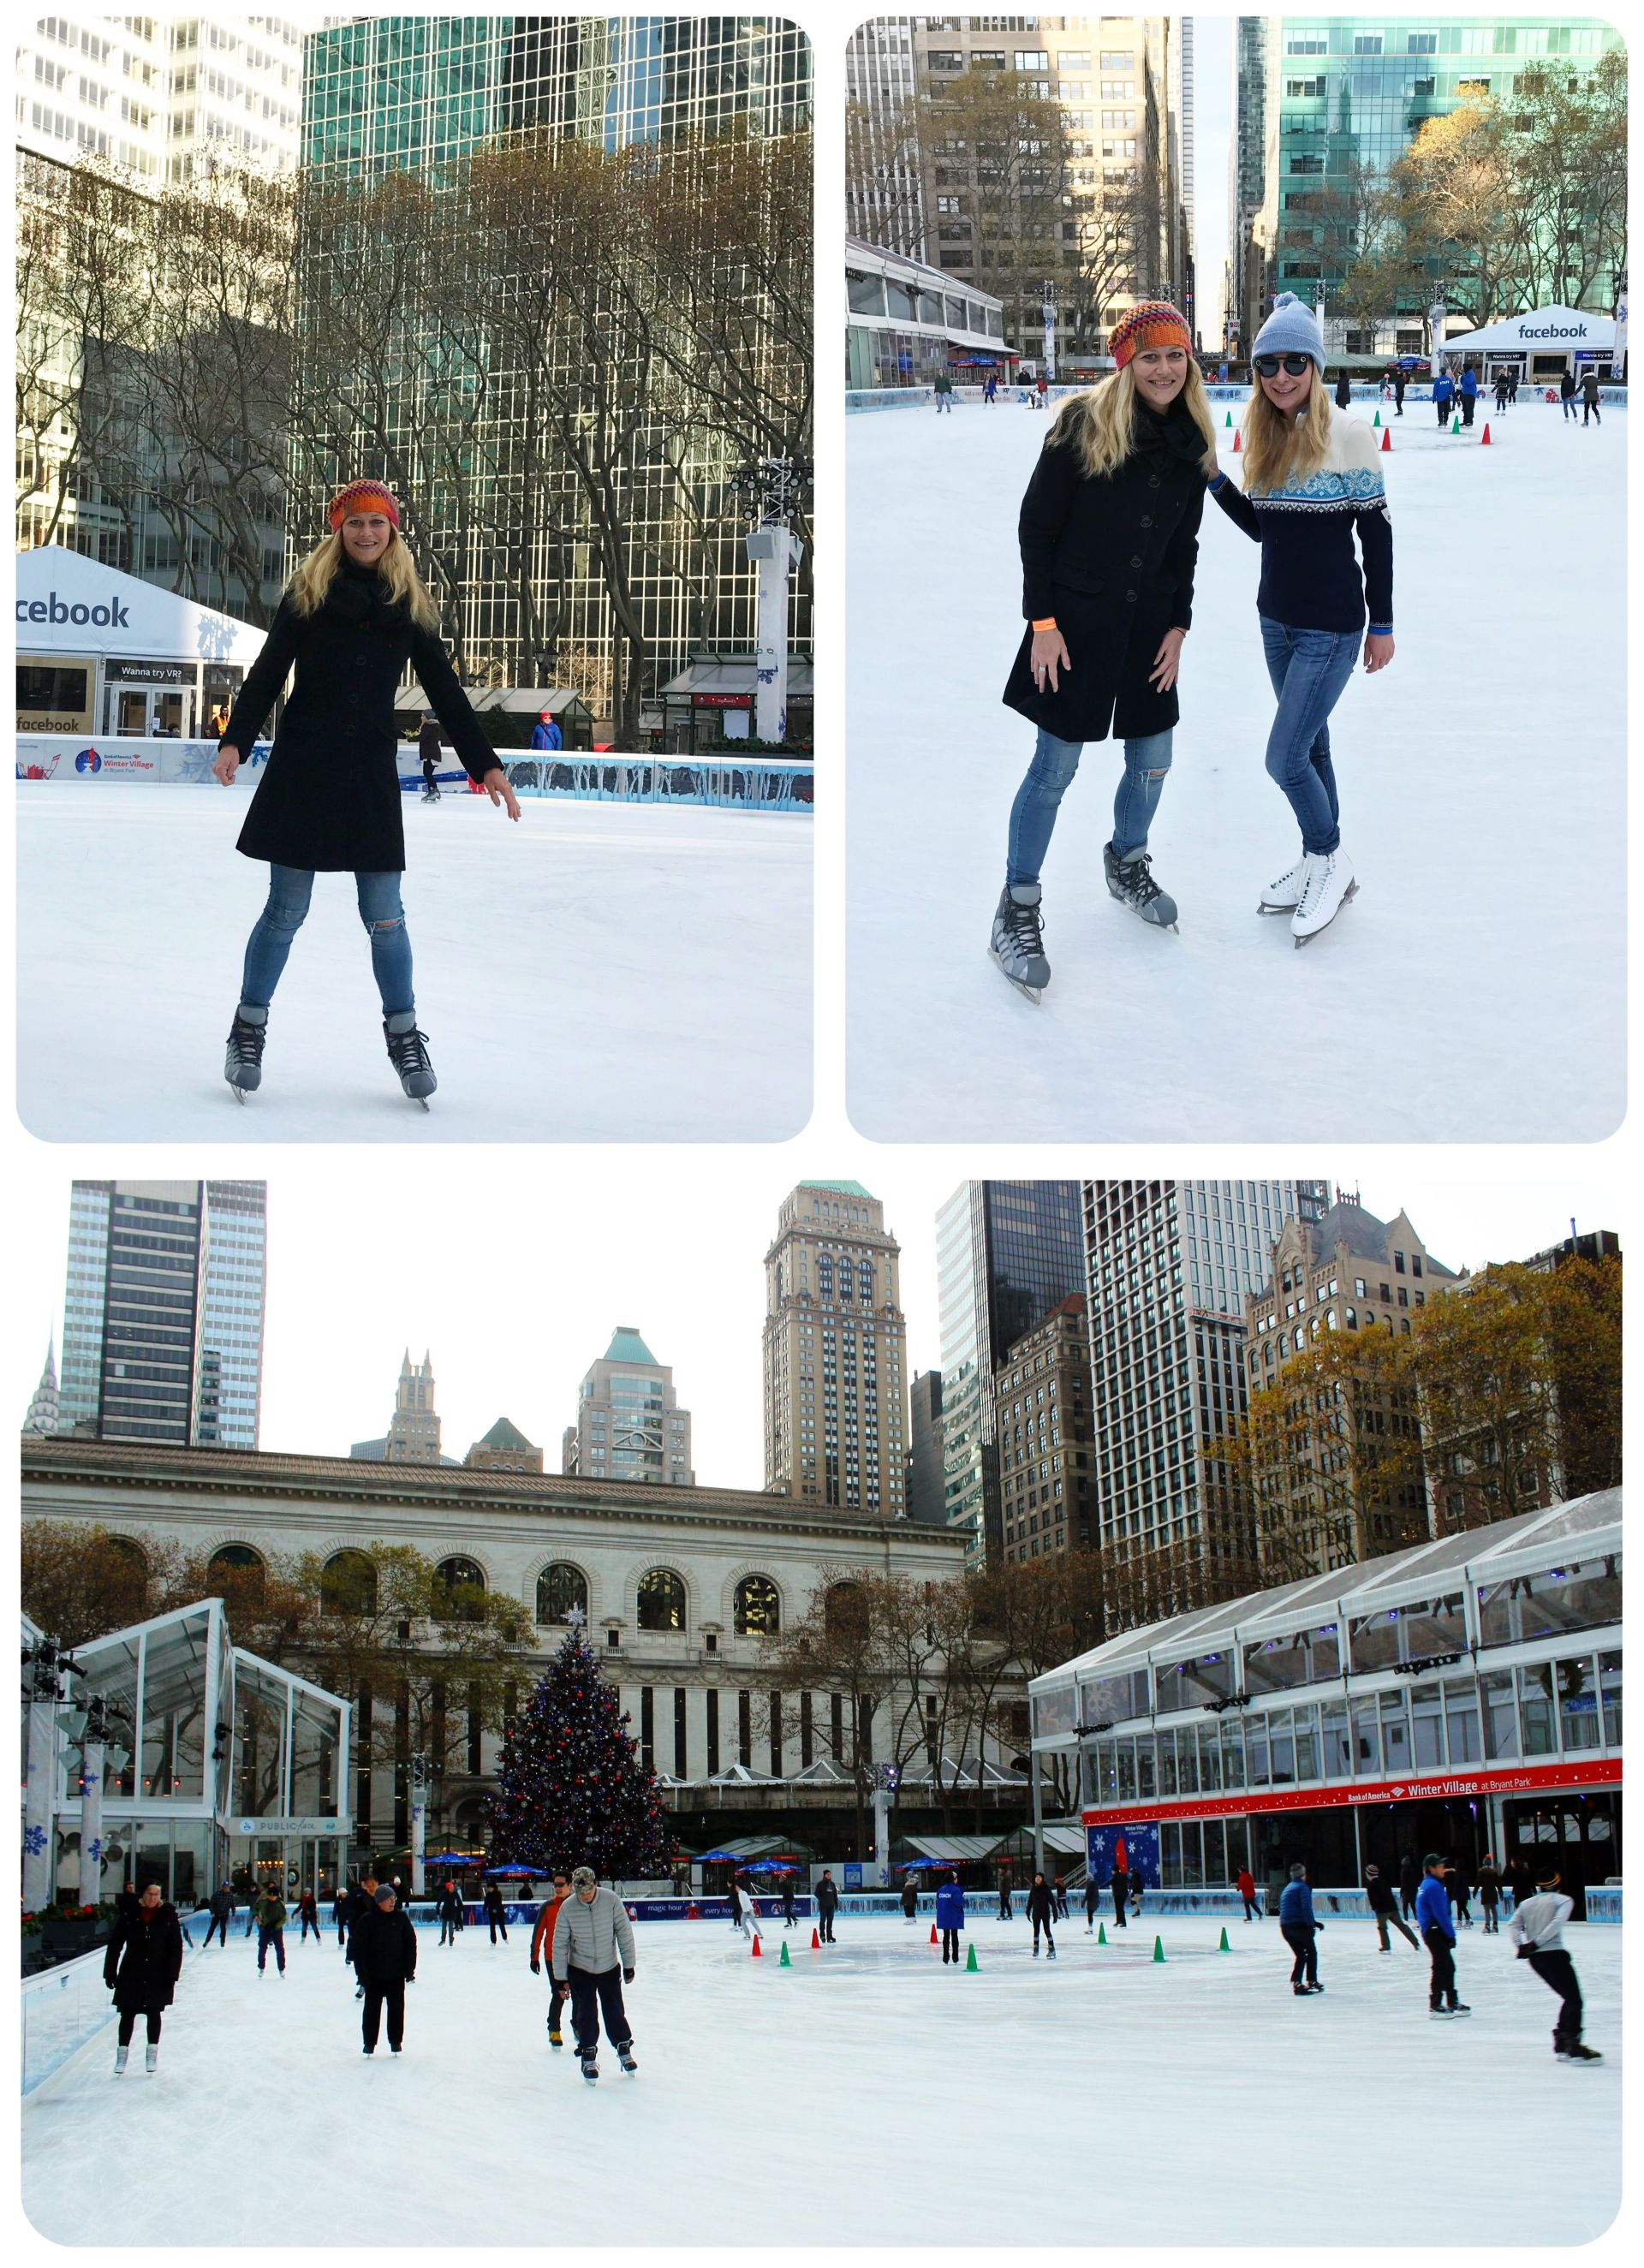 Ice skating NYC